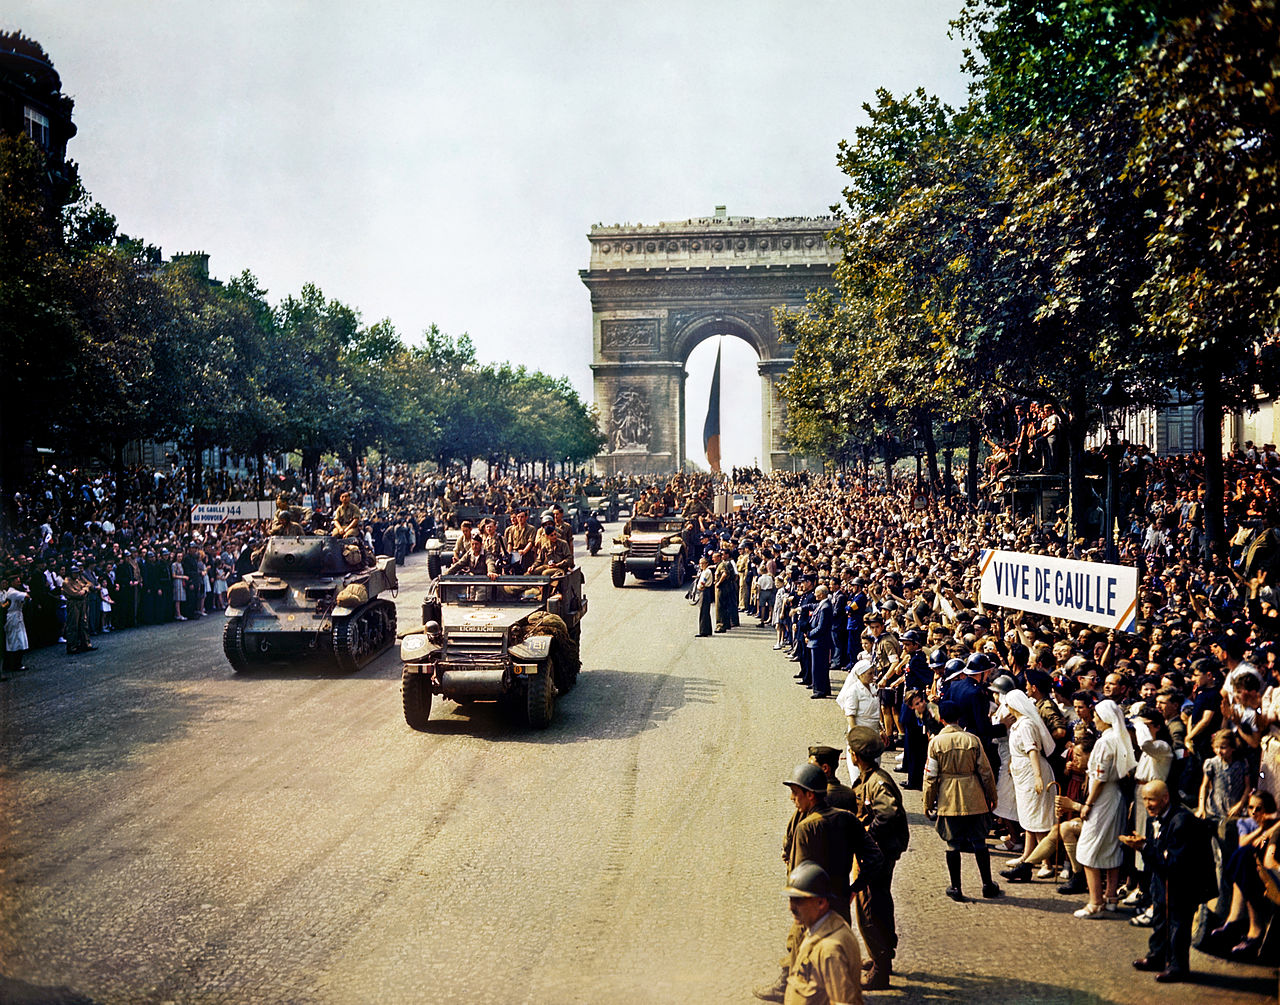 Crowds of French patriots line the Champs Elysees to view Free French tanks and half tracks of General Leclerc's 2nd Armored Division passes through the Arc du Triomphe, after Paris was liberated on August 26, 1944. Among the crowd can be seen banners in support of Charles de Gaulle. Photo taken by Jack Downey, U.S. Office of War Information. From the Library of Congress Prints and Photographs Division Washington, D.C. 20540 - reproduction number LC-DIG-fsac-1a55001 (digital file from original transparency)